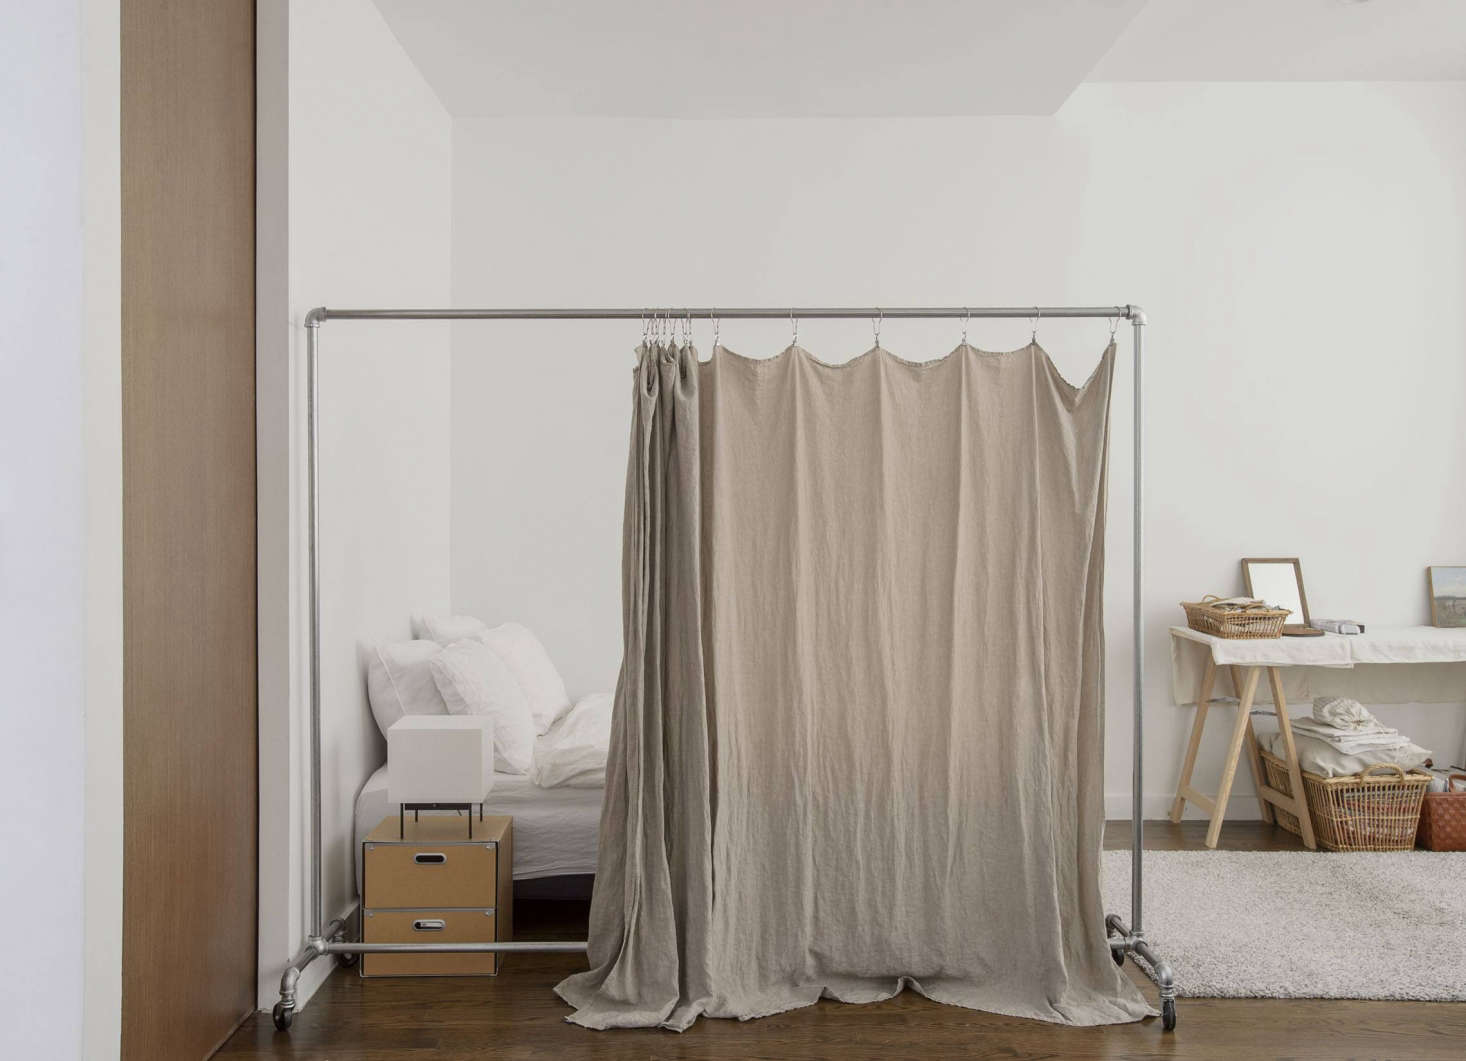 For a softer divider, we like the idea of curtains, but hanging one from the ceiling requires hardware and drilling holes. For less impact, try this hack from shopowner Makié Yahagi&#8